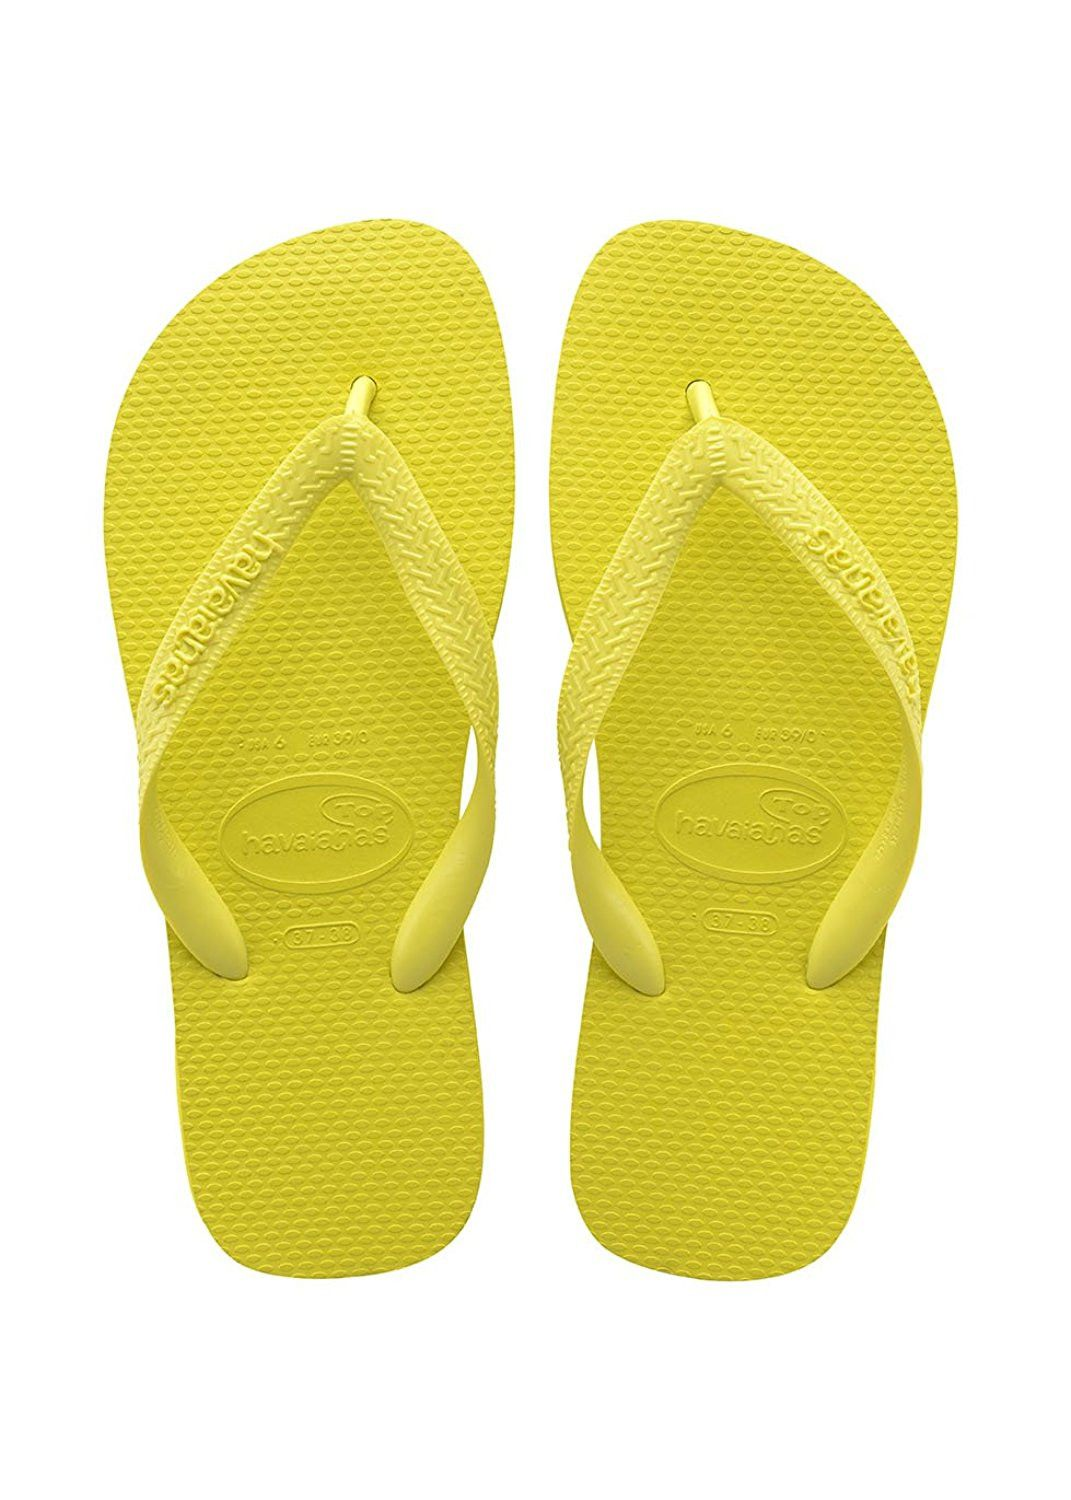 5aa22bbaa62c22 Havaianas Top Citrus Yellow Jandals Price From  NZ 20.68 https   flopstore.